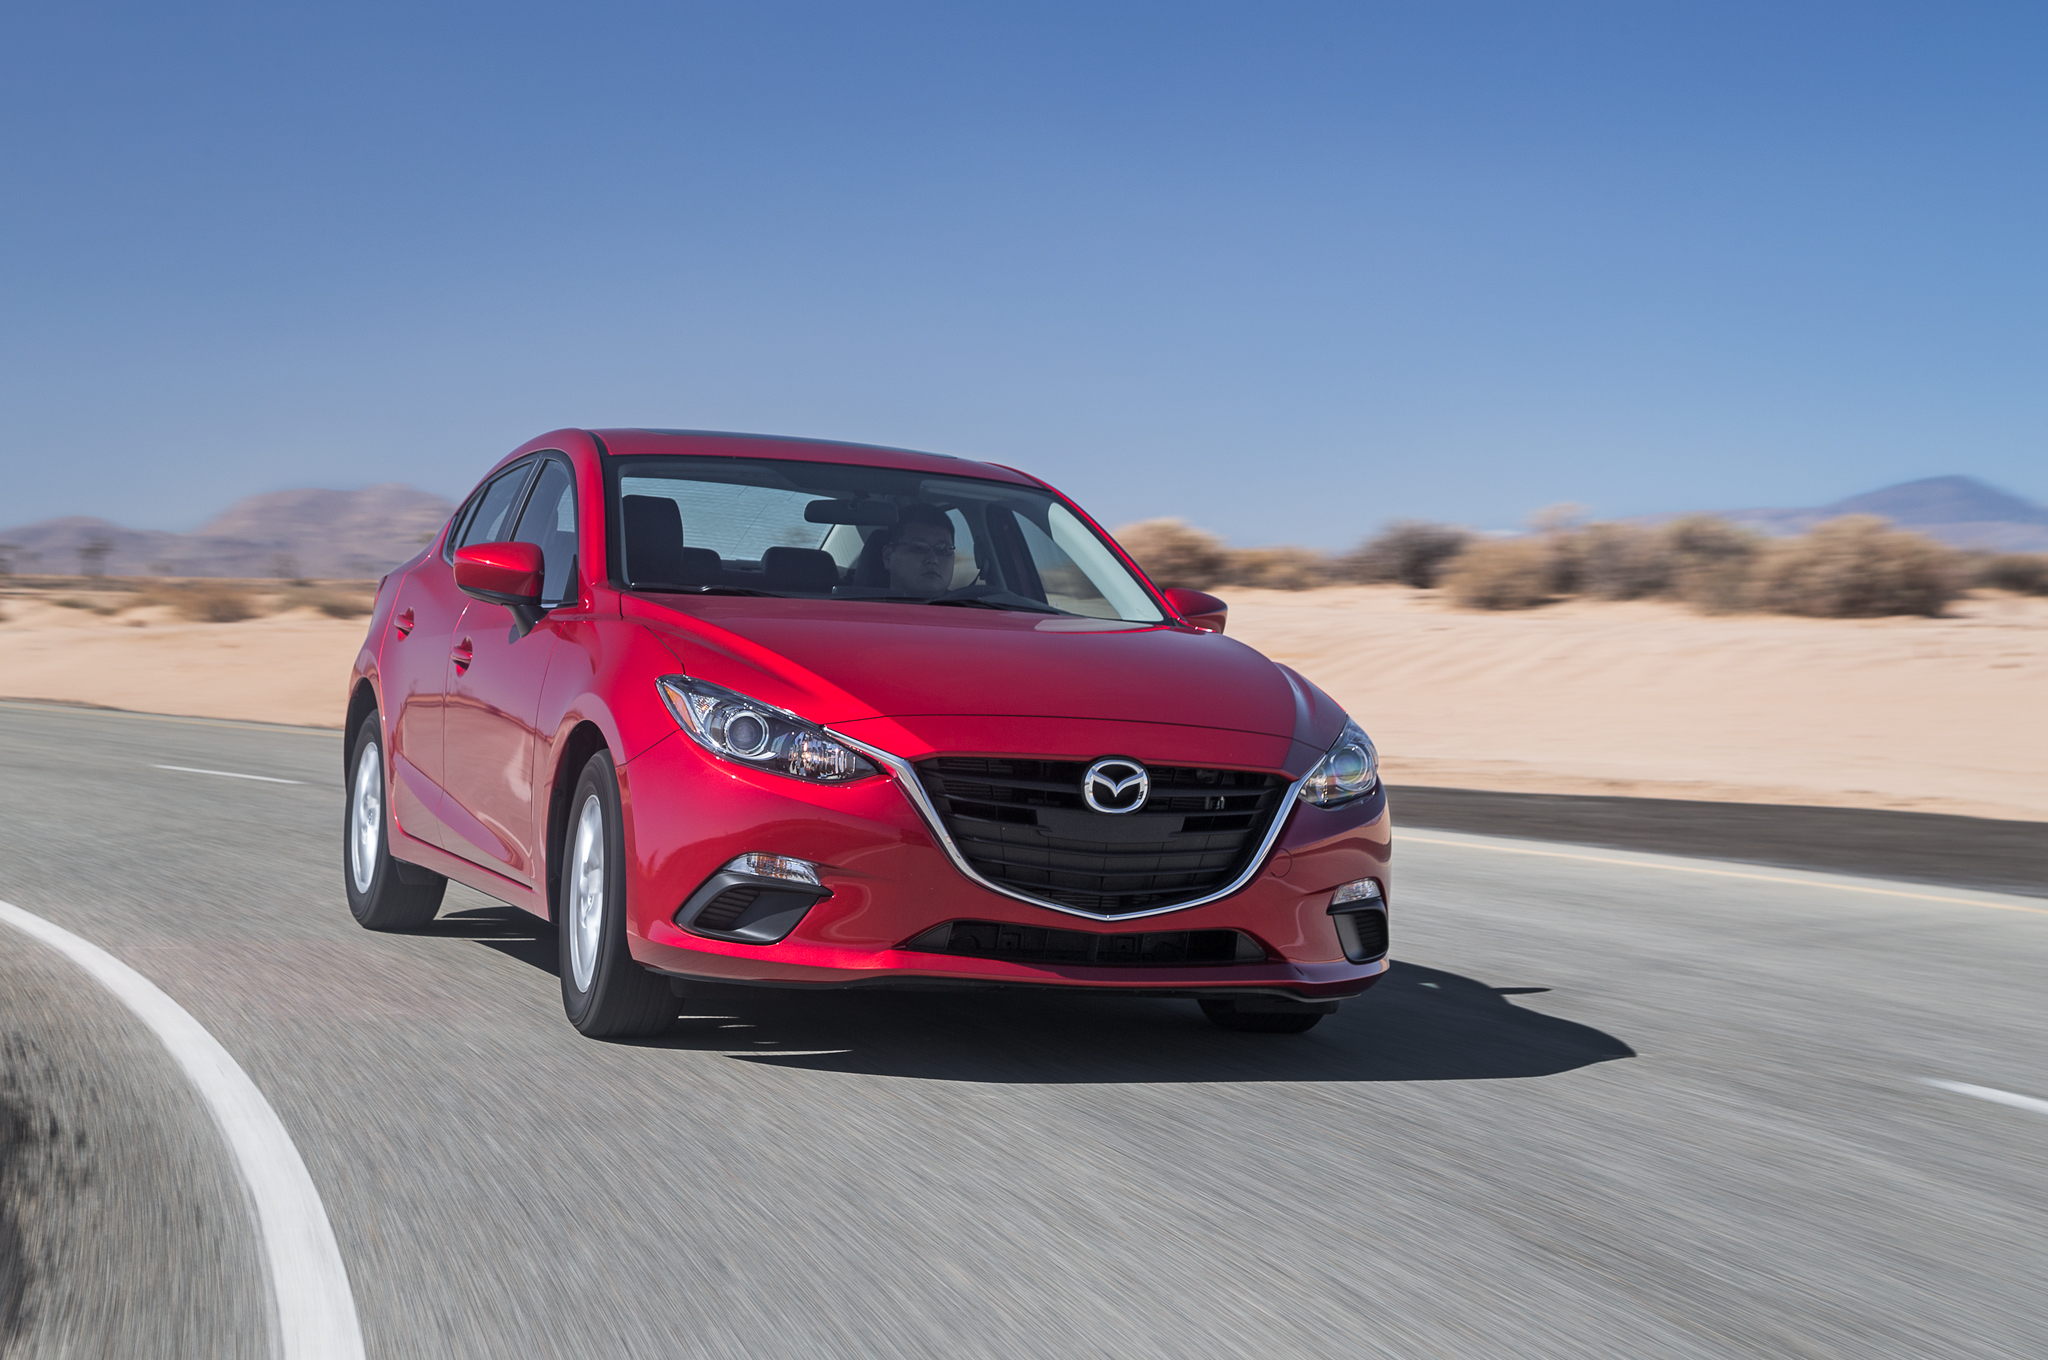 Mazda Skyactiv 2 Engines To Feature Hcci Tech Debut By 2020